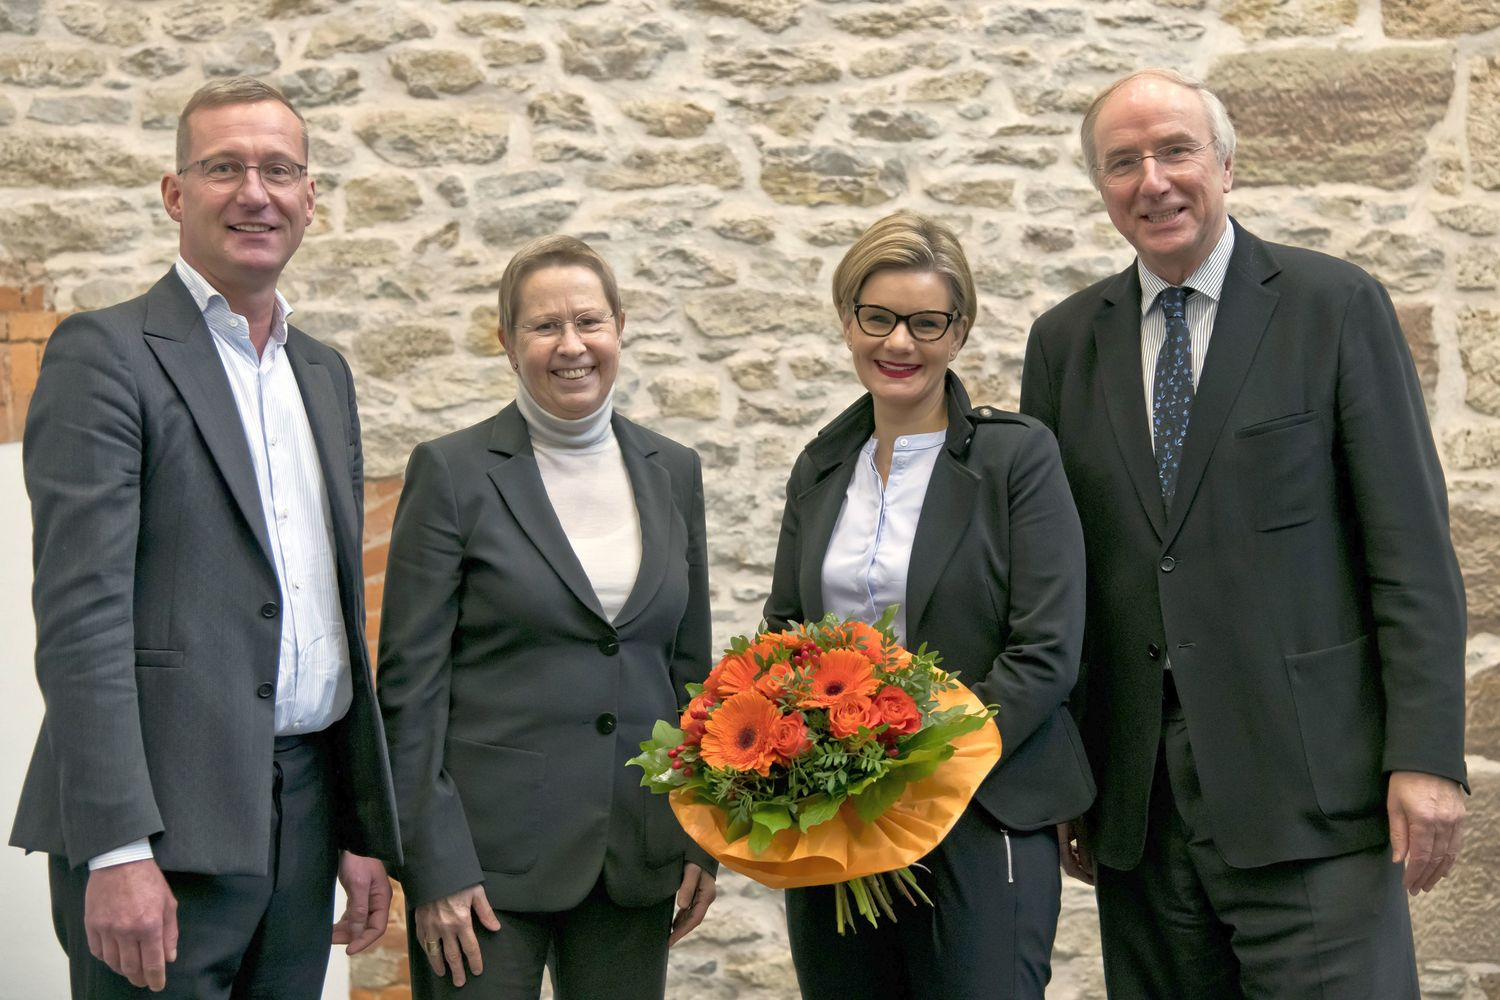 From the left: Senate spokesman Prof. Dr. Nicolai Miosge, University President Prof. Dr. Ulrike Beisiegel, Dr. Valérie Schüller and Dr. Wilhelm Krull, chairman of the finding comittee and the University Foundation Council.